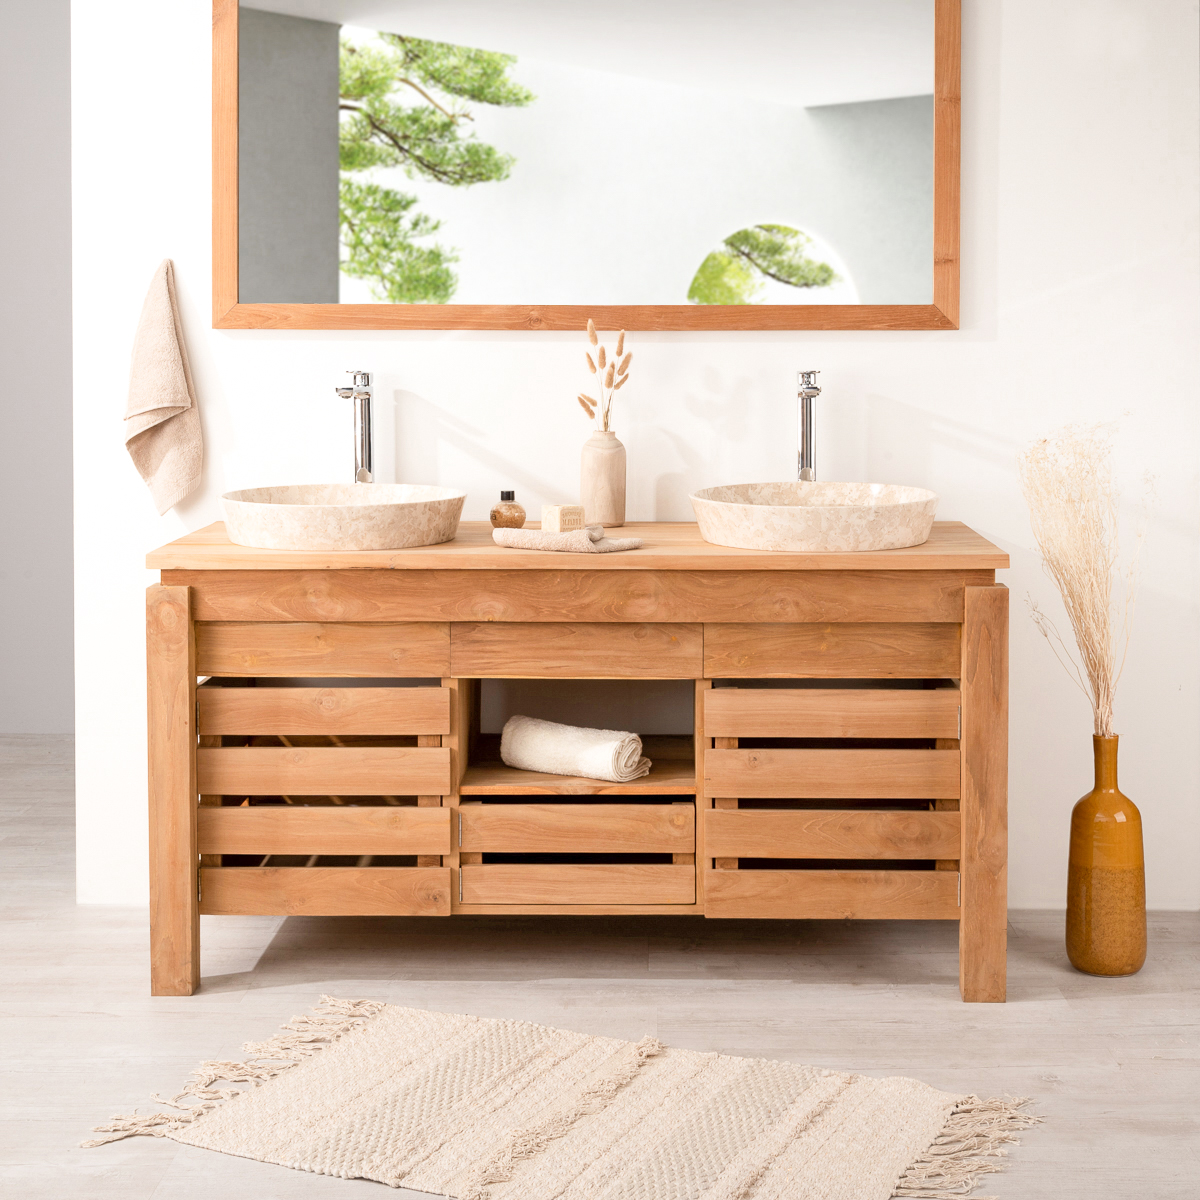 Meuble sous vasque double vasque en bois teck massif zen rectangle na - Direct salle de bain ...